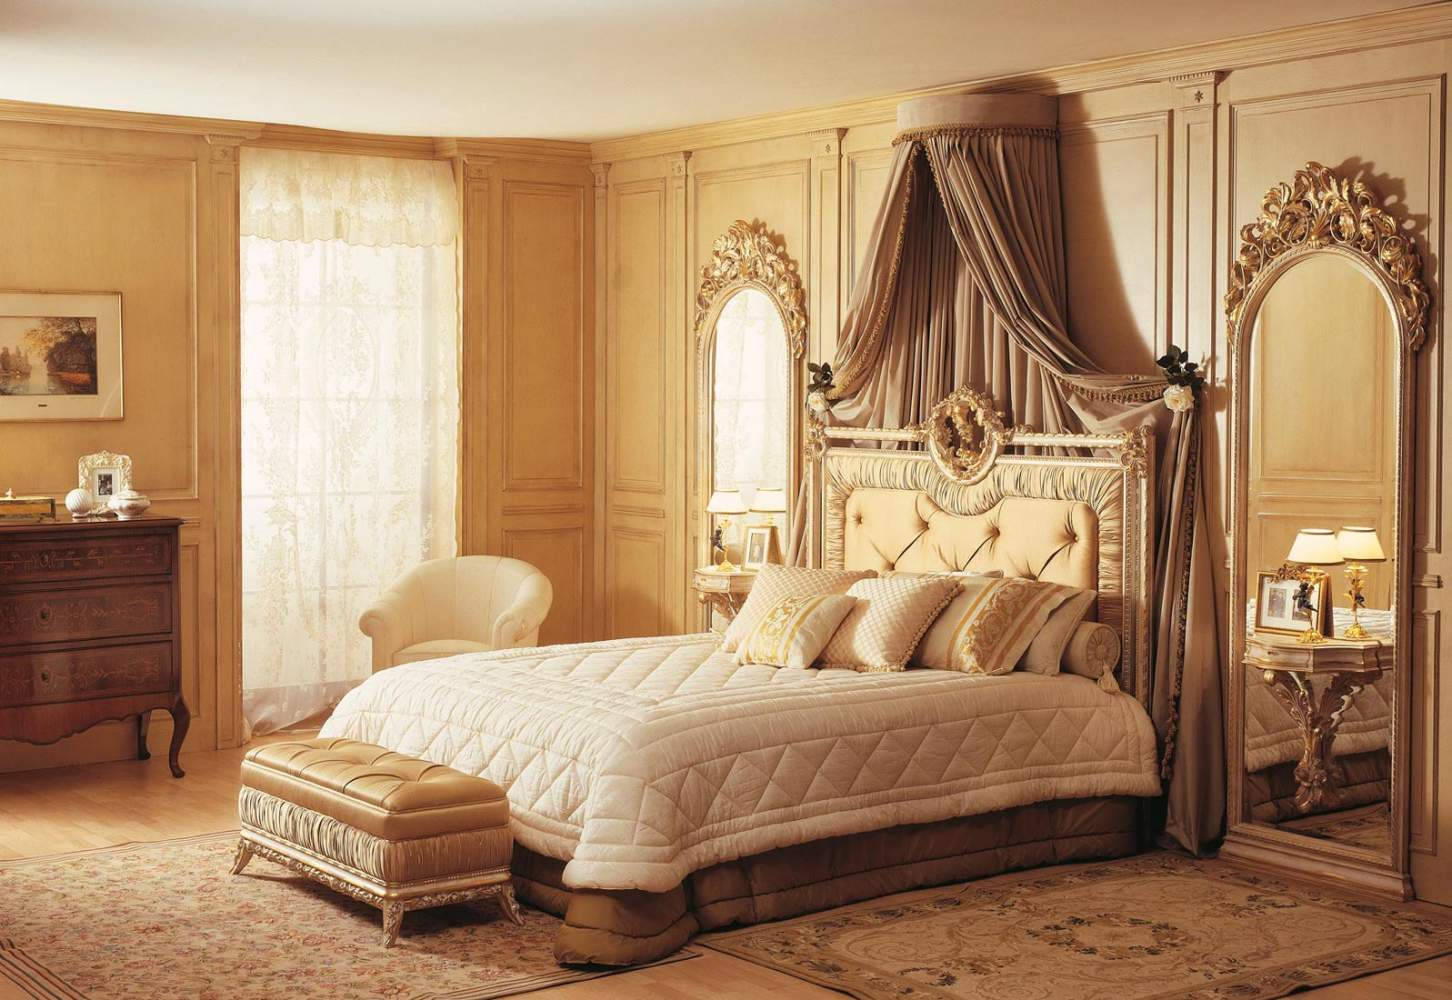 Classic Louvre bedroom, bed and wall mirror white over gold